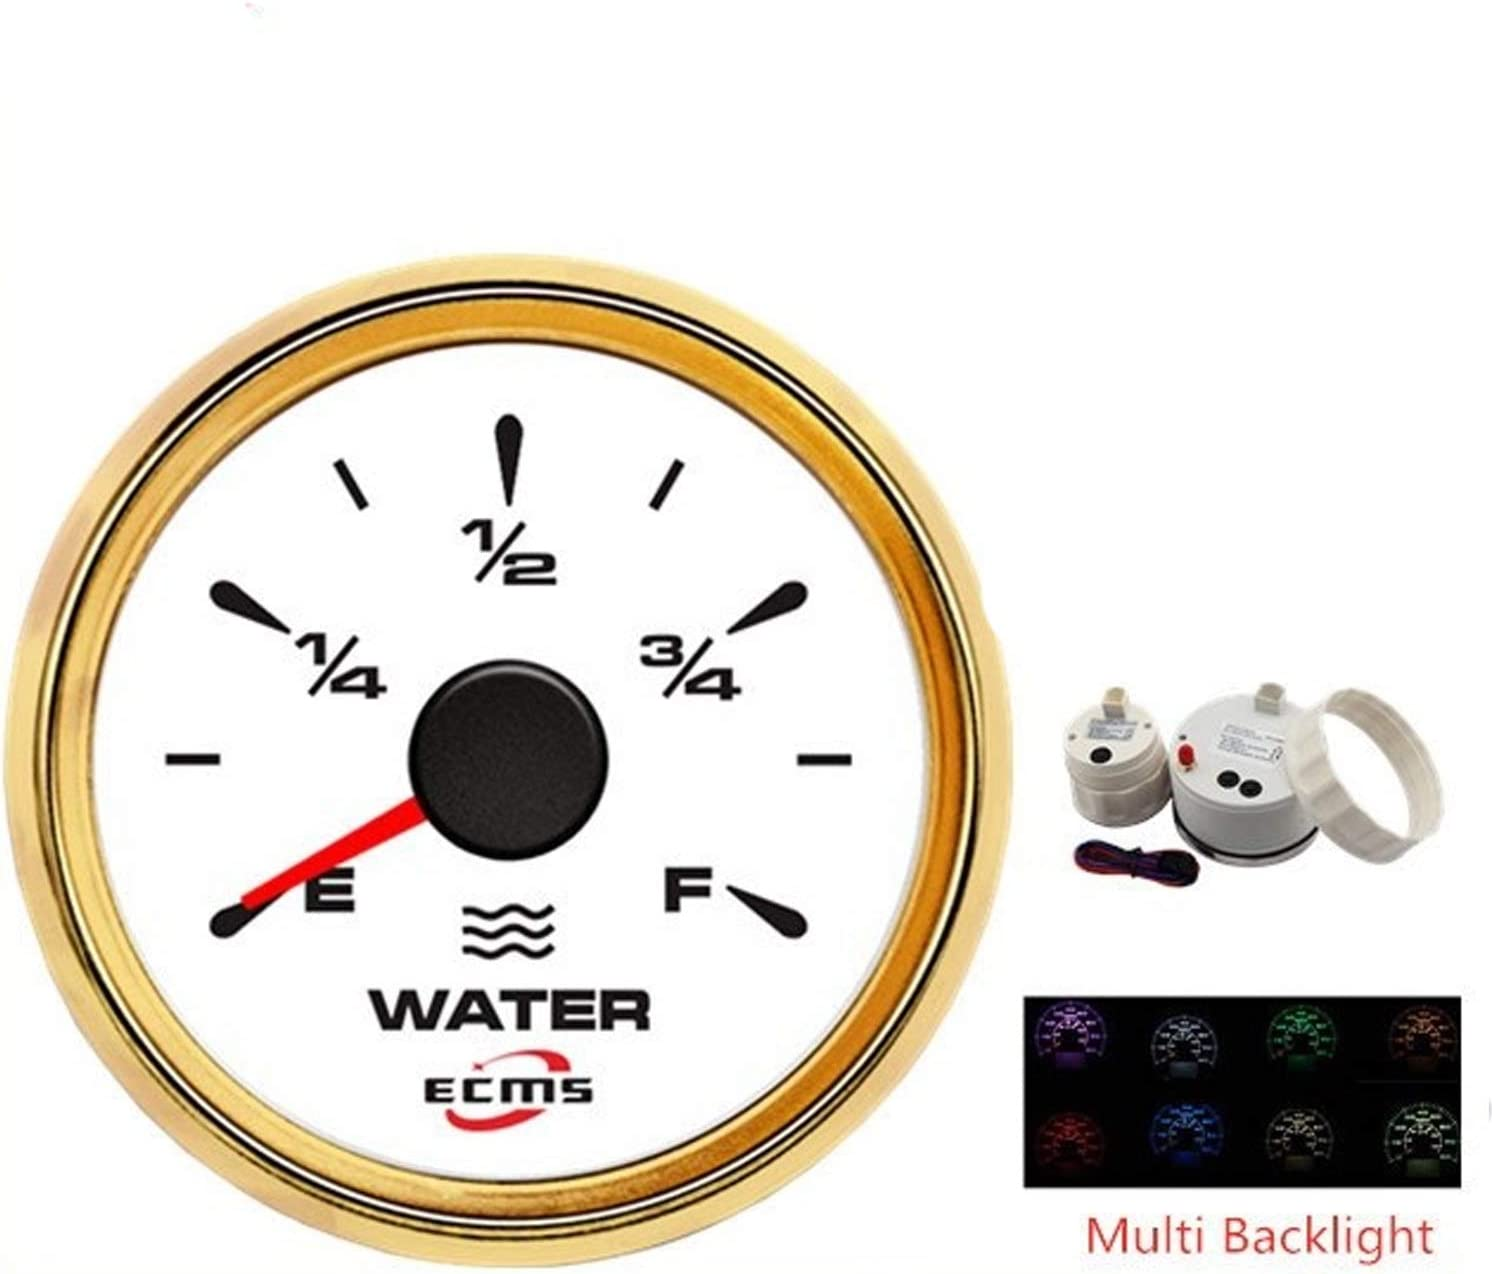 Electronic measuring equipment Universal Multiple Backlight 52mm Water Level Gauge Meter Indicator